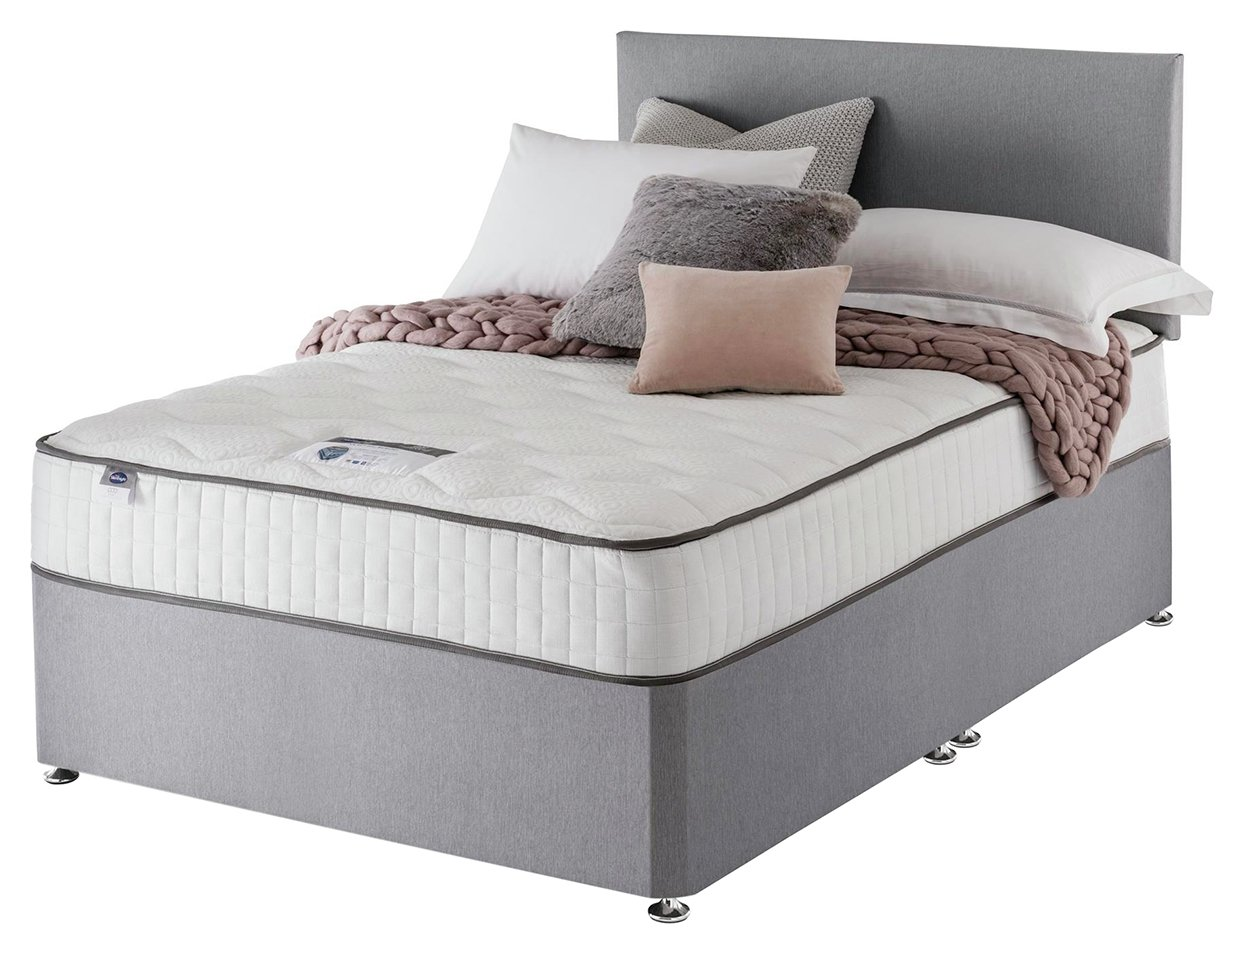 Silentnight Middleton 800 PKT Memory 0DRW Grey King Size